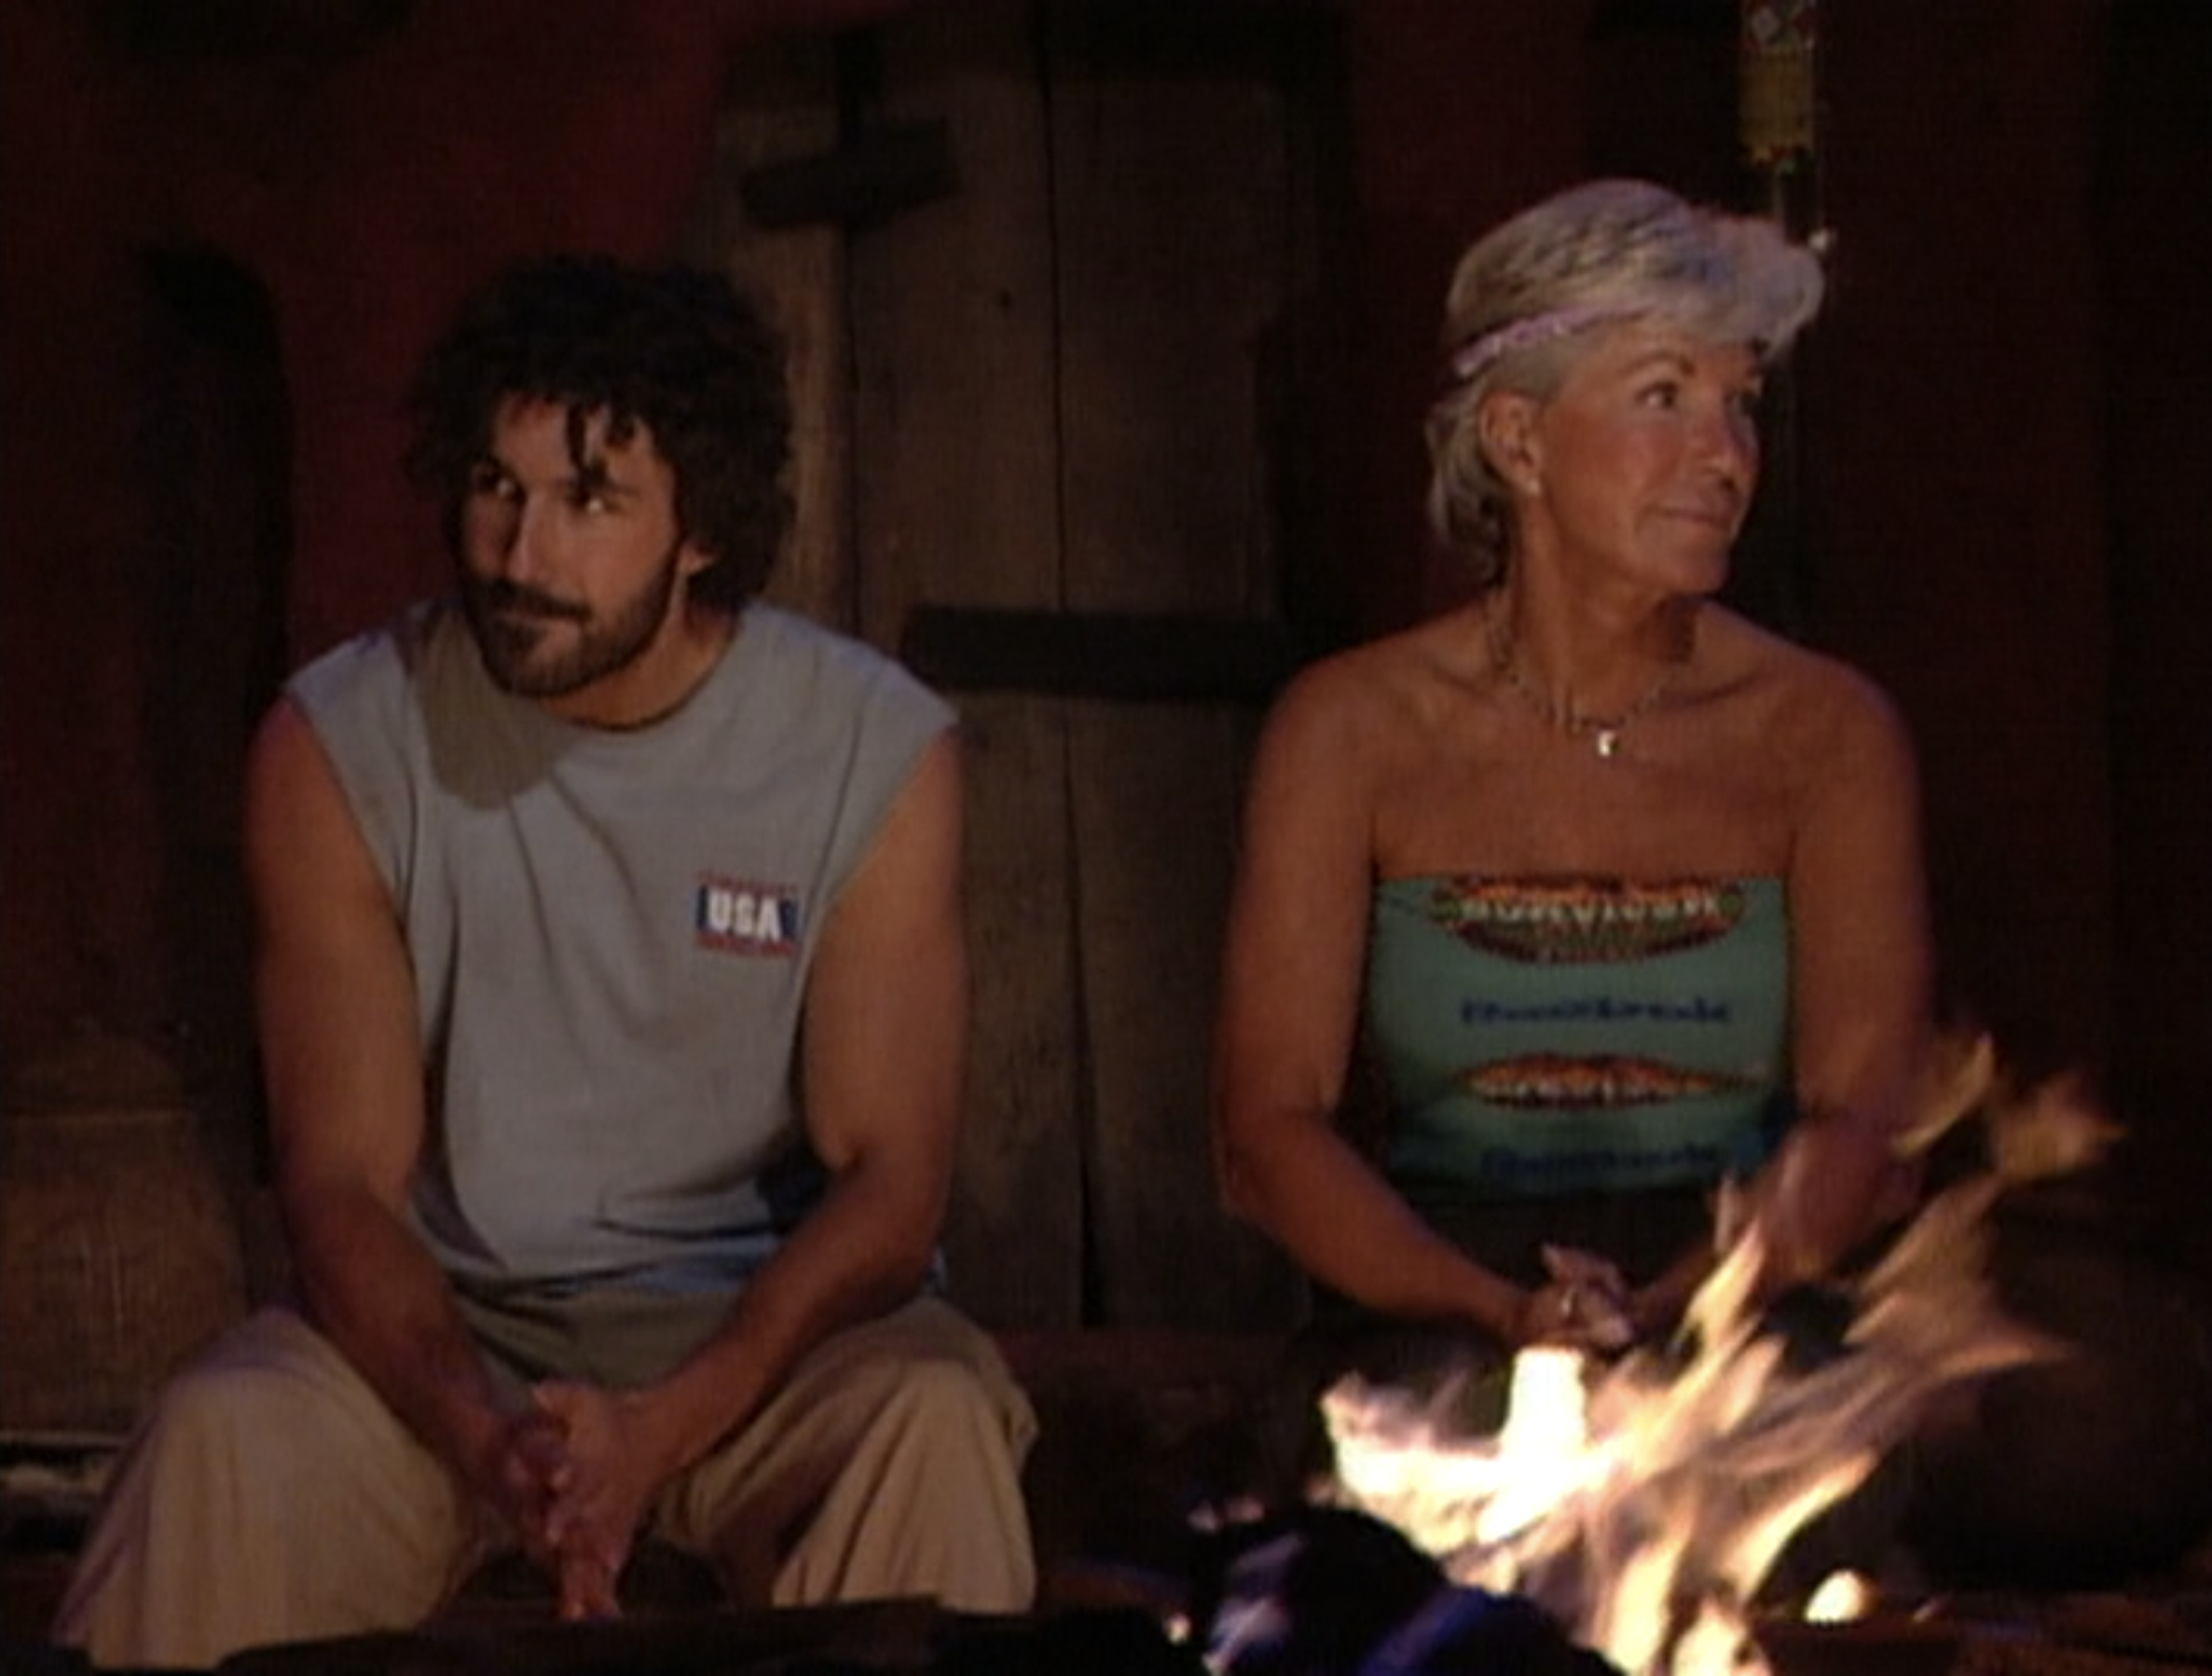 Ethan Zohn and Kim Johnson sit together at the finale of Survivor: Africa